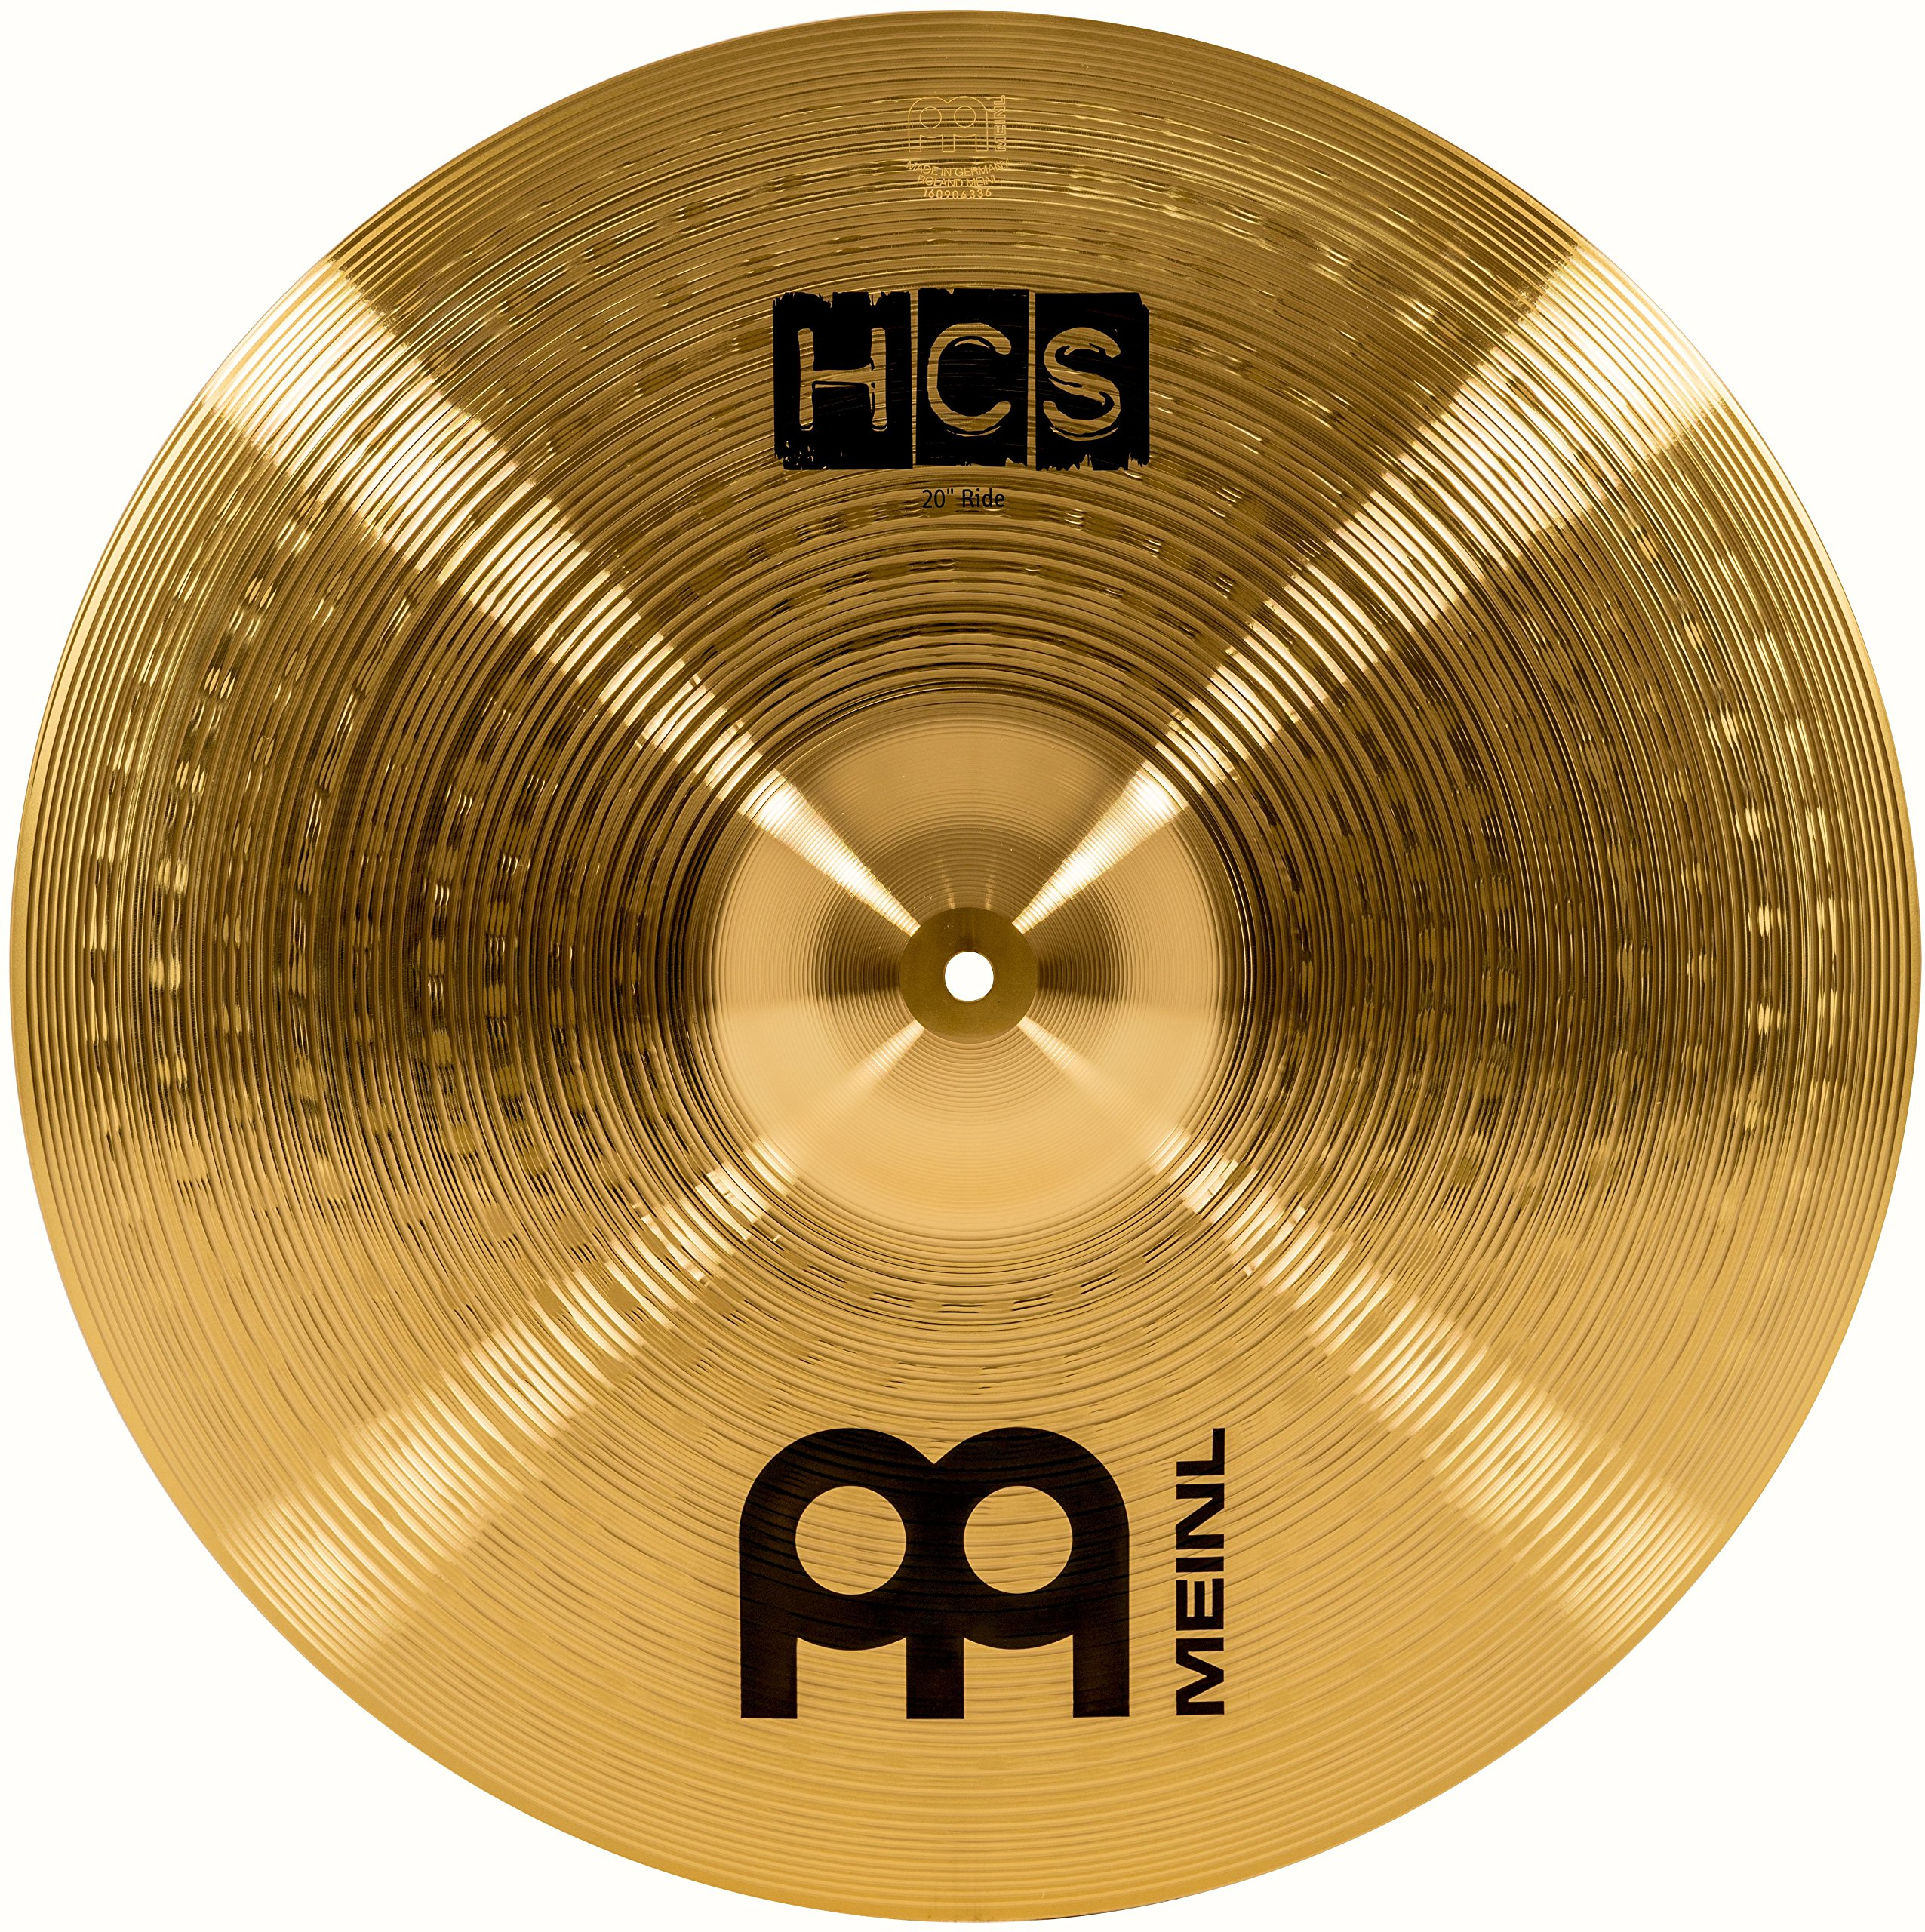 Meinl Cymbals HCS20R 20'' HCS Brass Ride Cymbal for Drum Set (VIDEO) by Meinl Cymbals (Image #1)